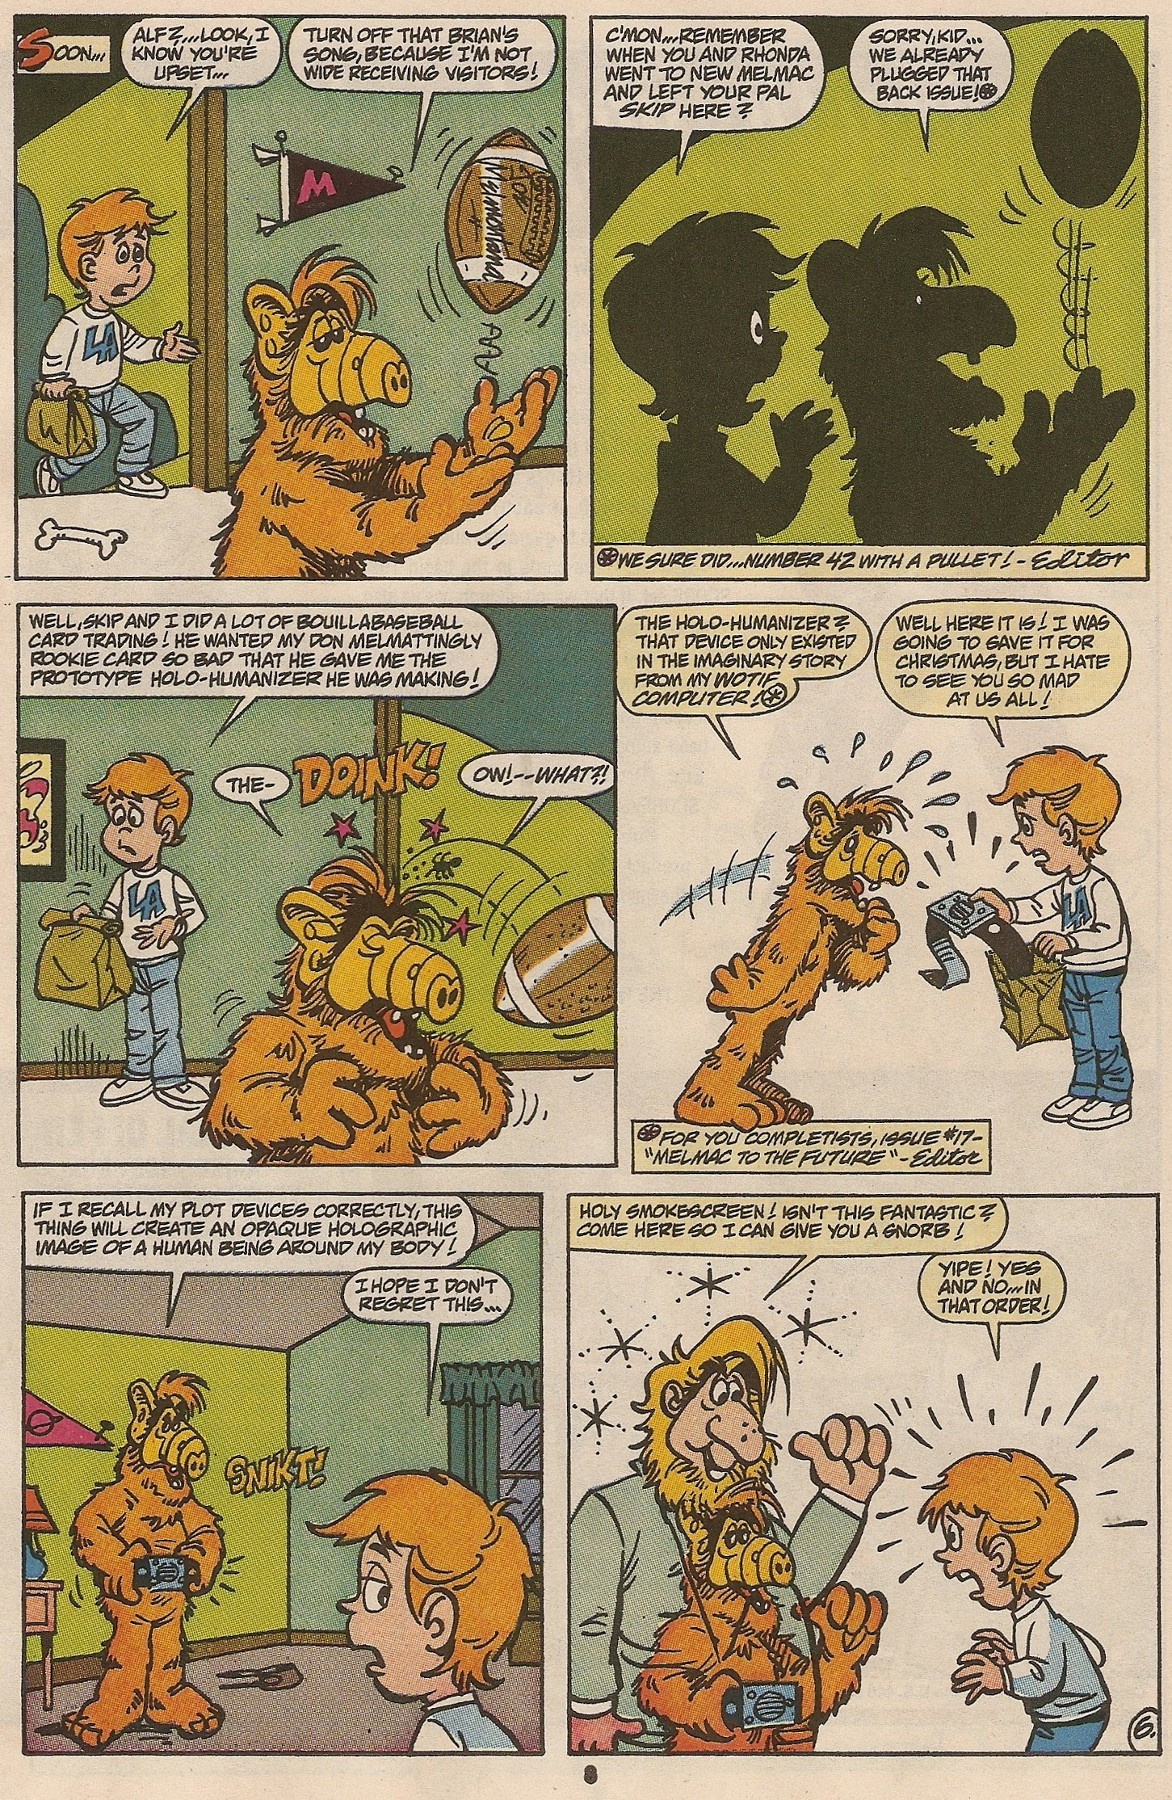 Read online ALF comic -  Issue #47 - 10